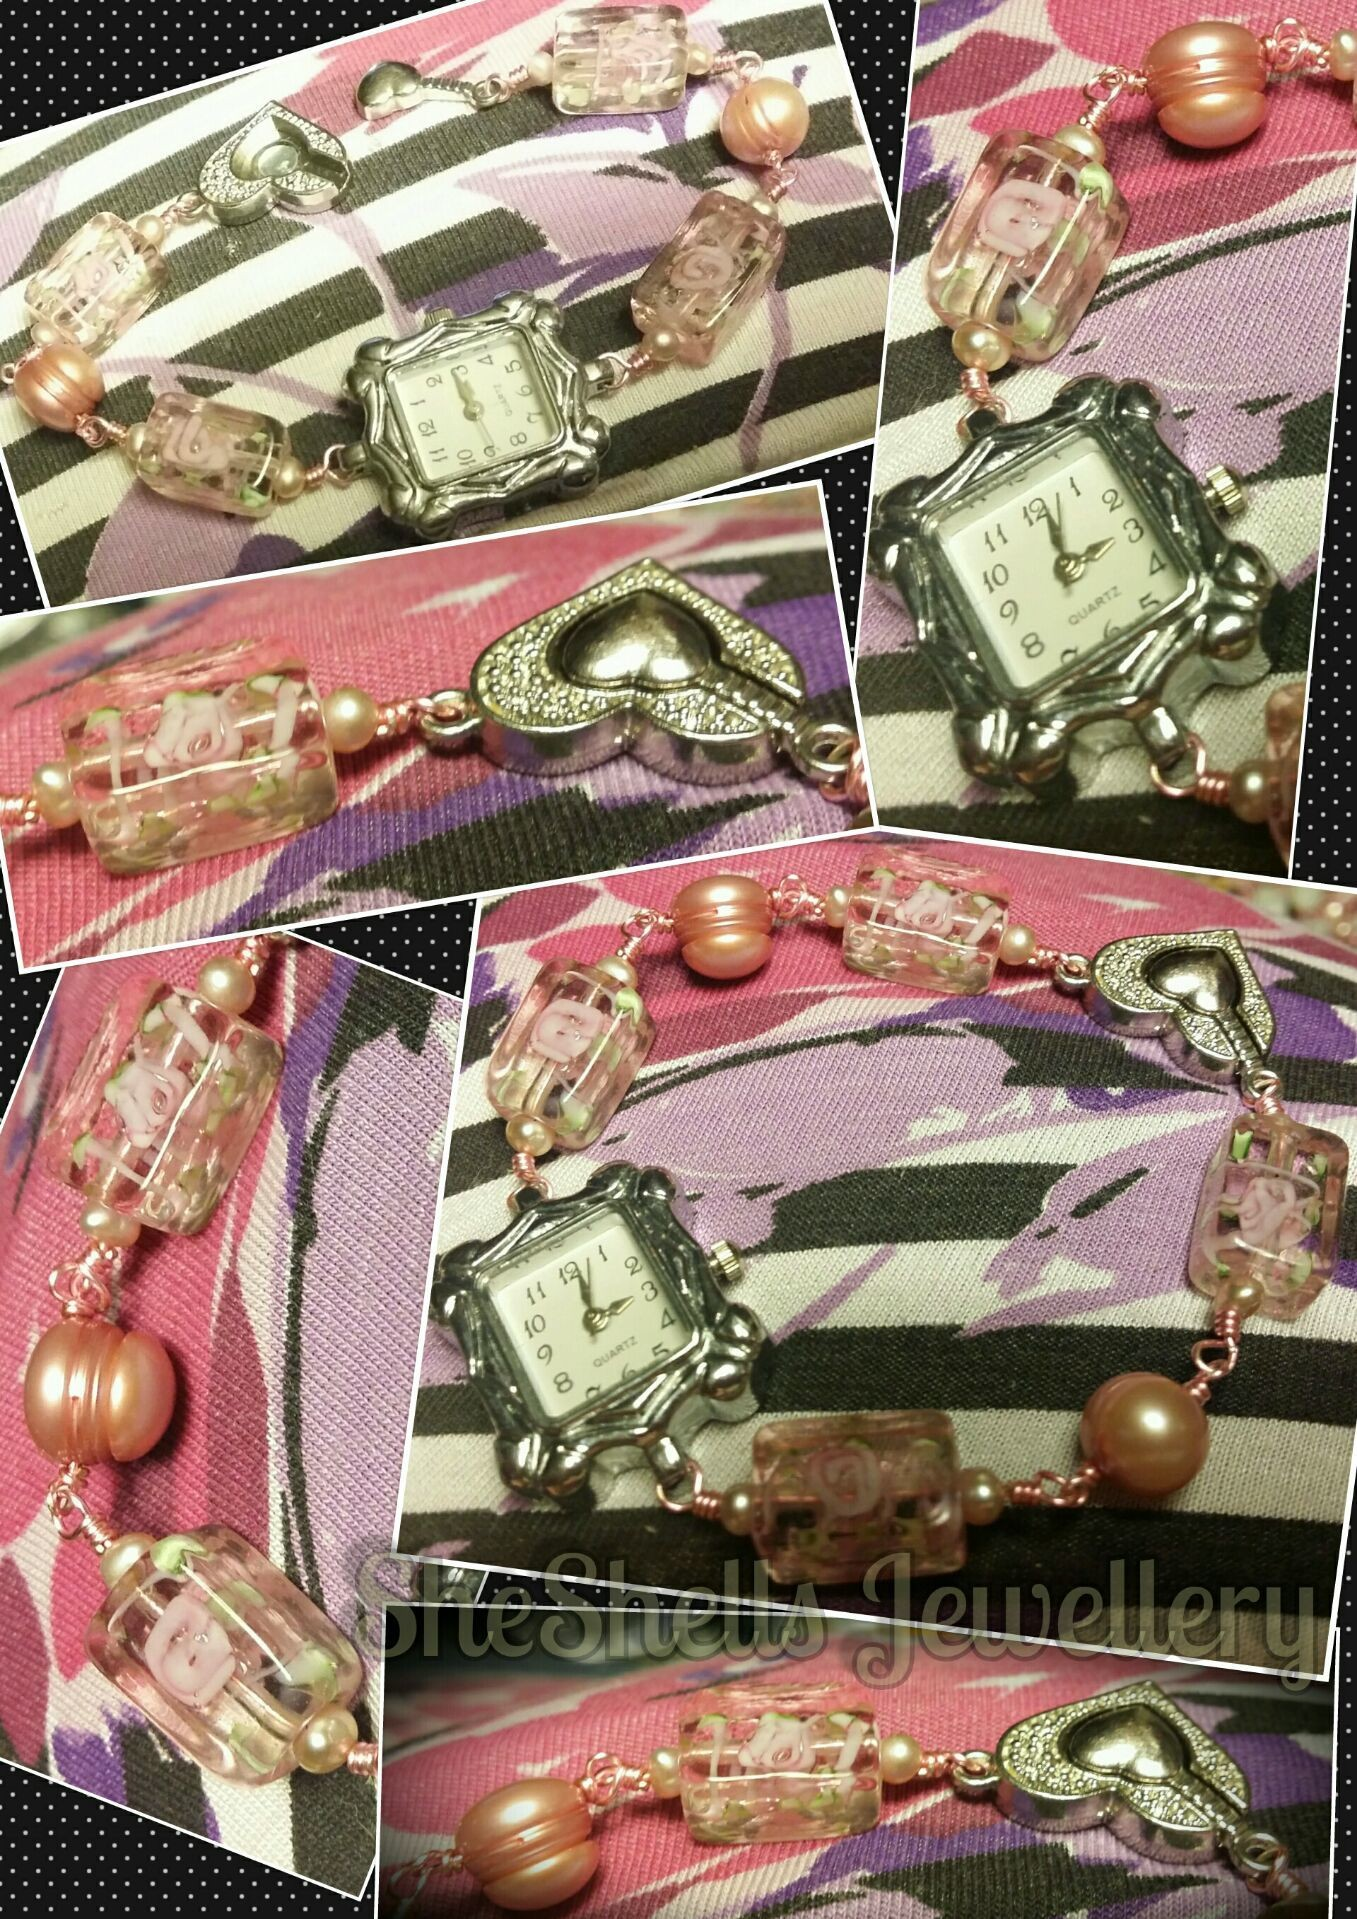 Hand crafted Watch with beautiful Rectangular Pink Glass Beads and 2 types of Real Pink Freshwater Pearls - £12.50 The watch has teeny peach freshwater pearls either side of the rectangular glass beads and pink freshwater potato pearls inbetween. The rectangular glass beads have pink swirls & flowers with green leaves. It closes with a silver plated, textured, magnetic heart shaped clasp